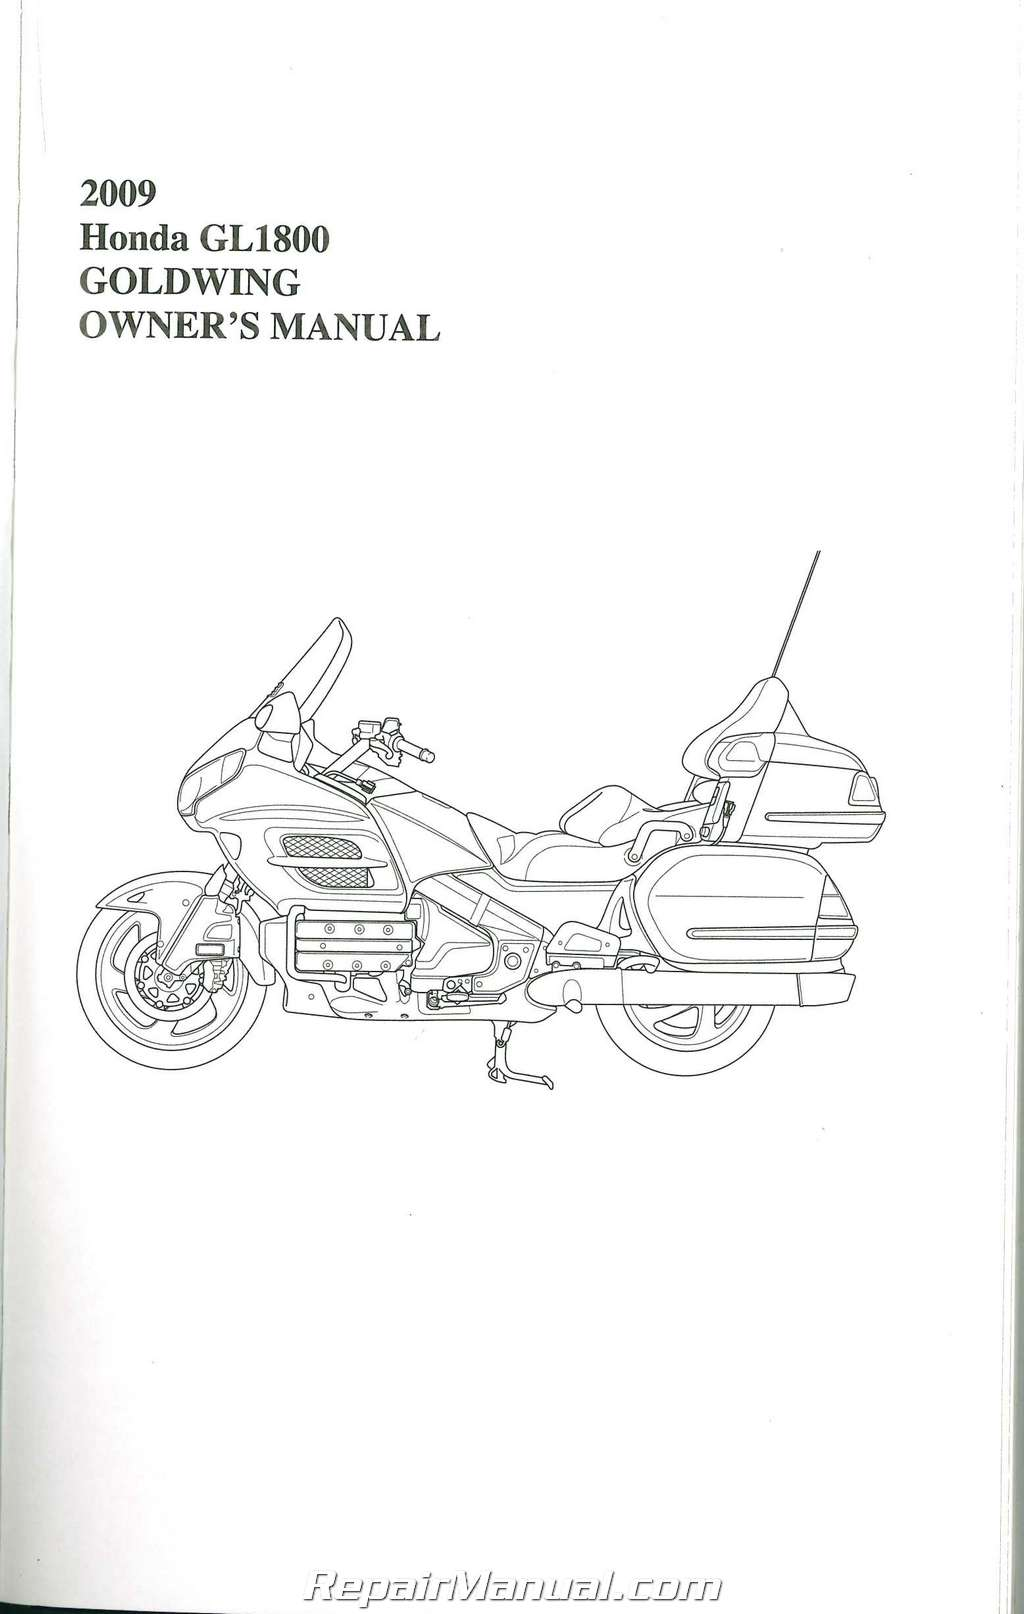 2009 Honda GL1800 Gold Wing Motorcycle Owners Manual